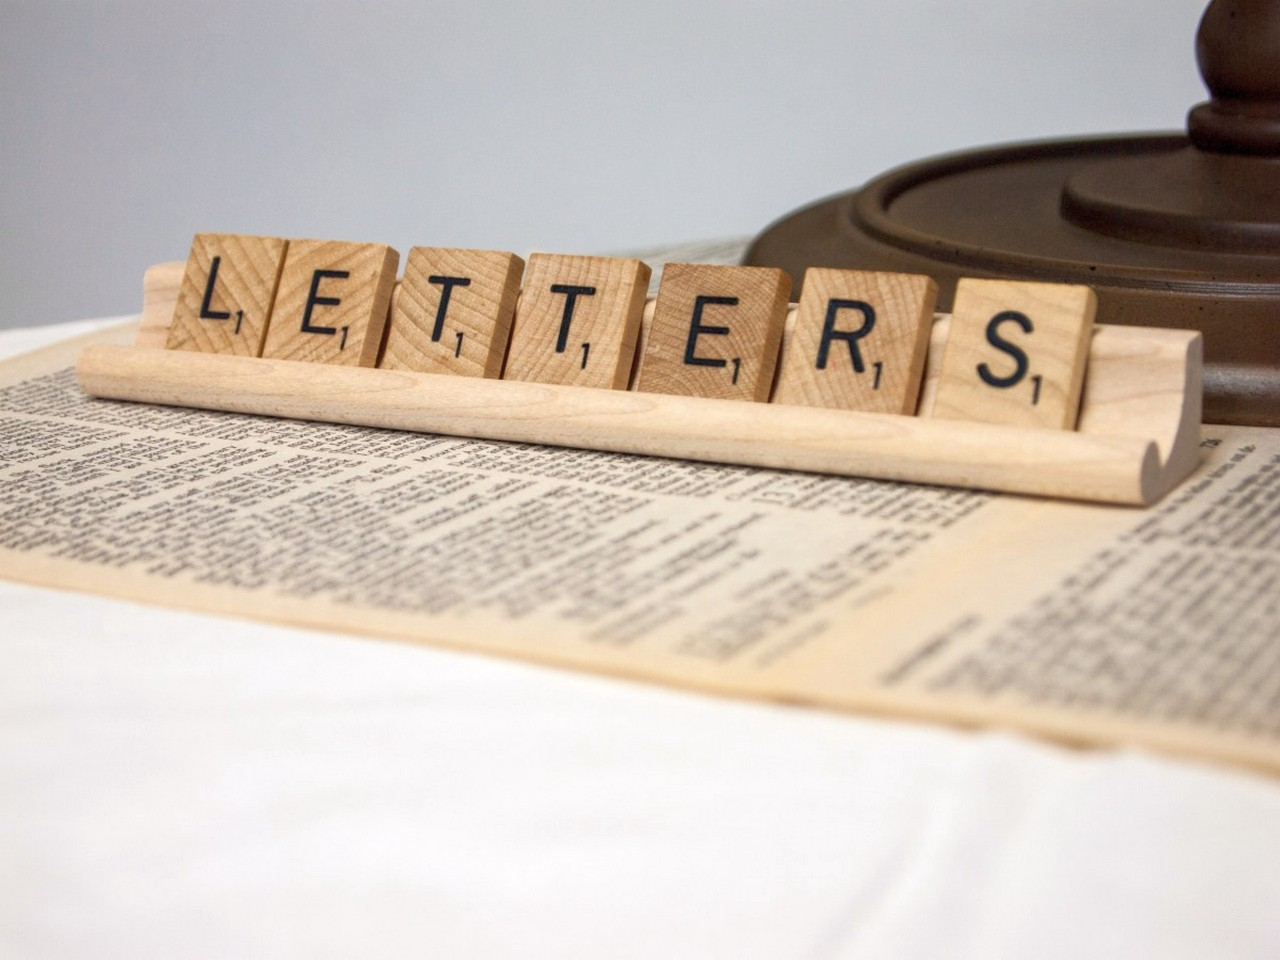 Hints for Writing a Professional Letter